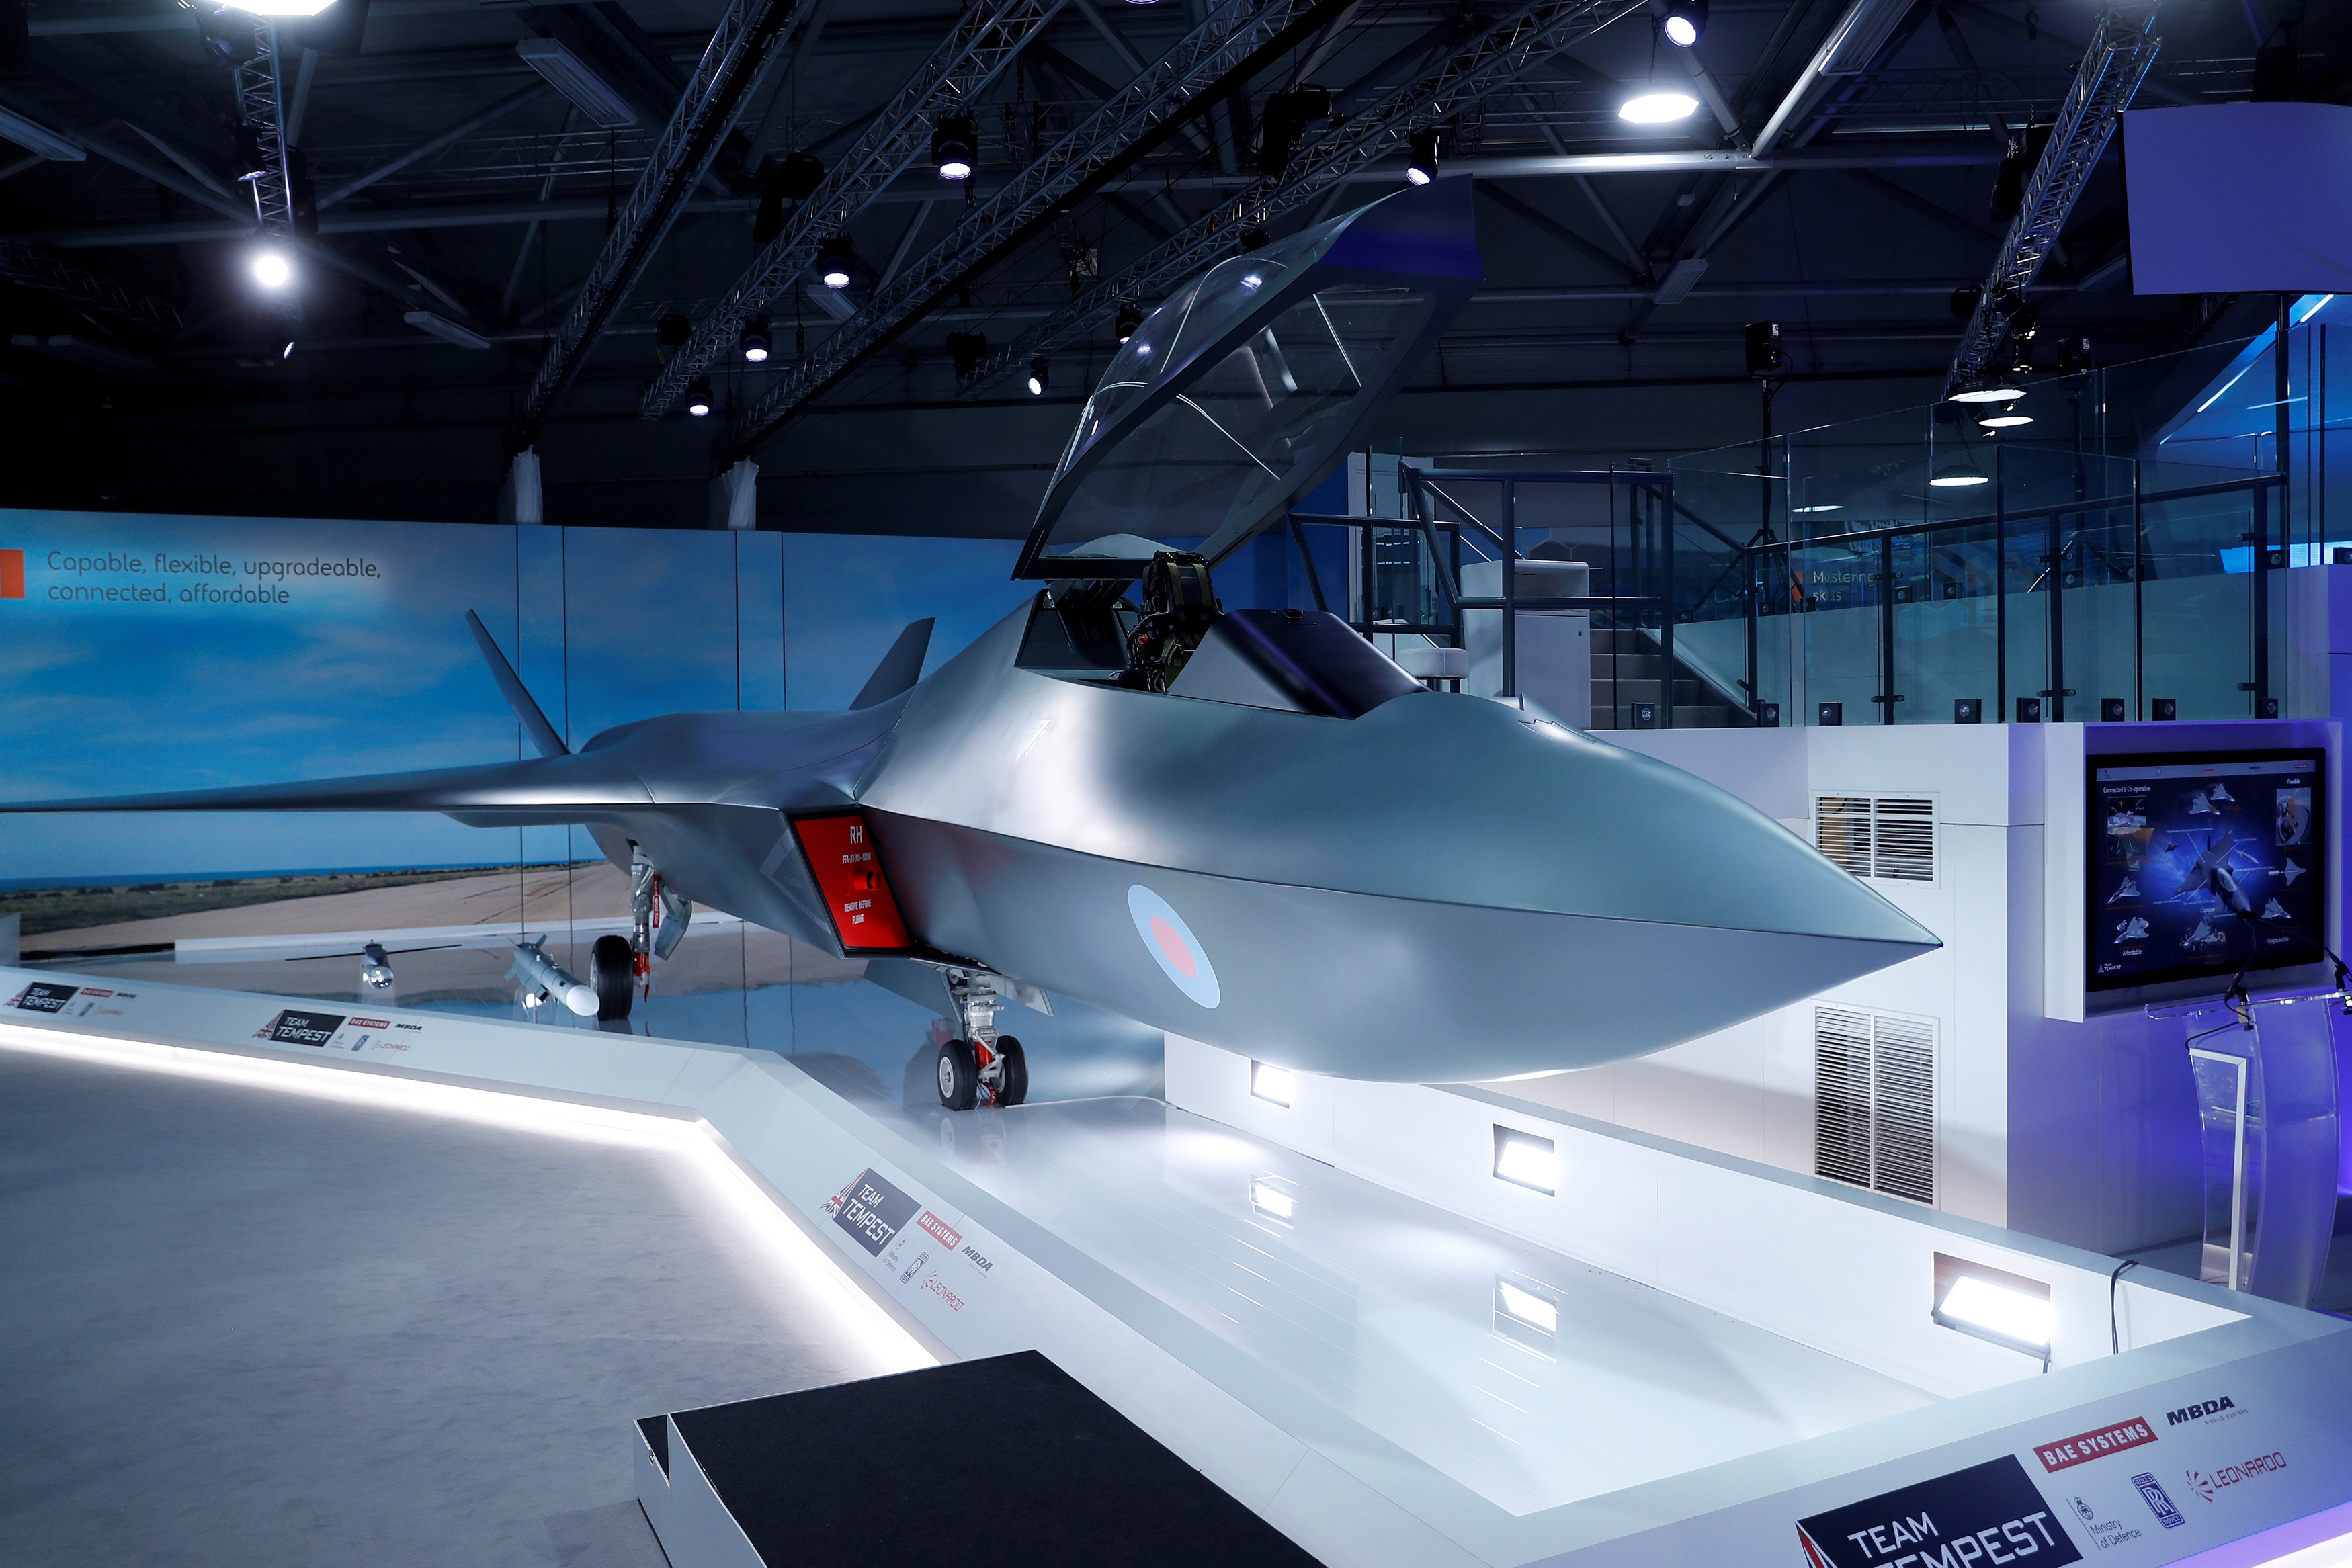 Forget the F-35: The Tempest Could Be the Future (Armed with